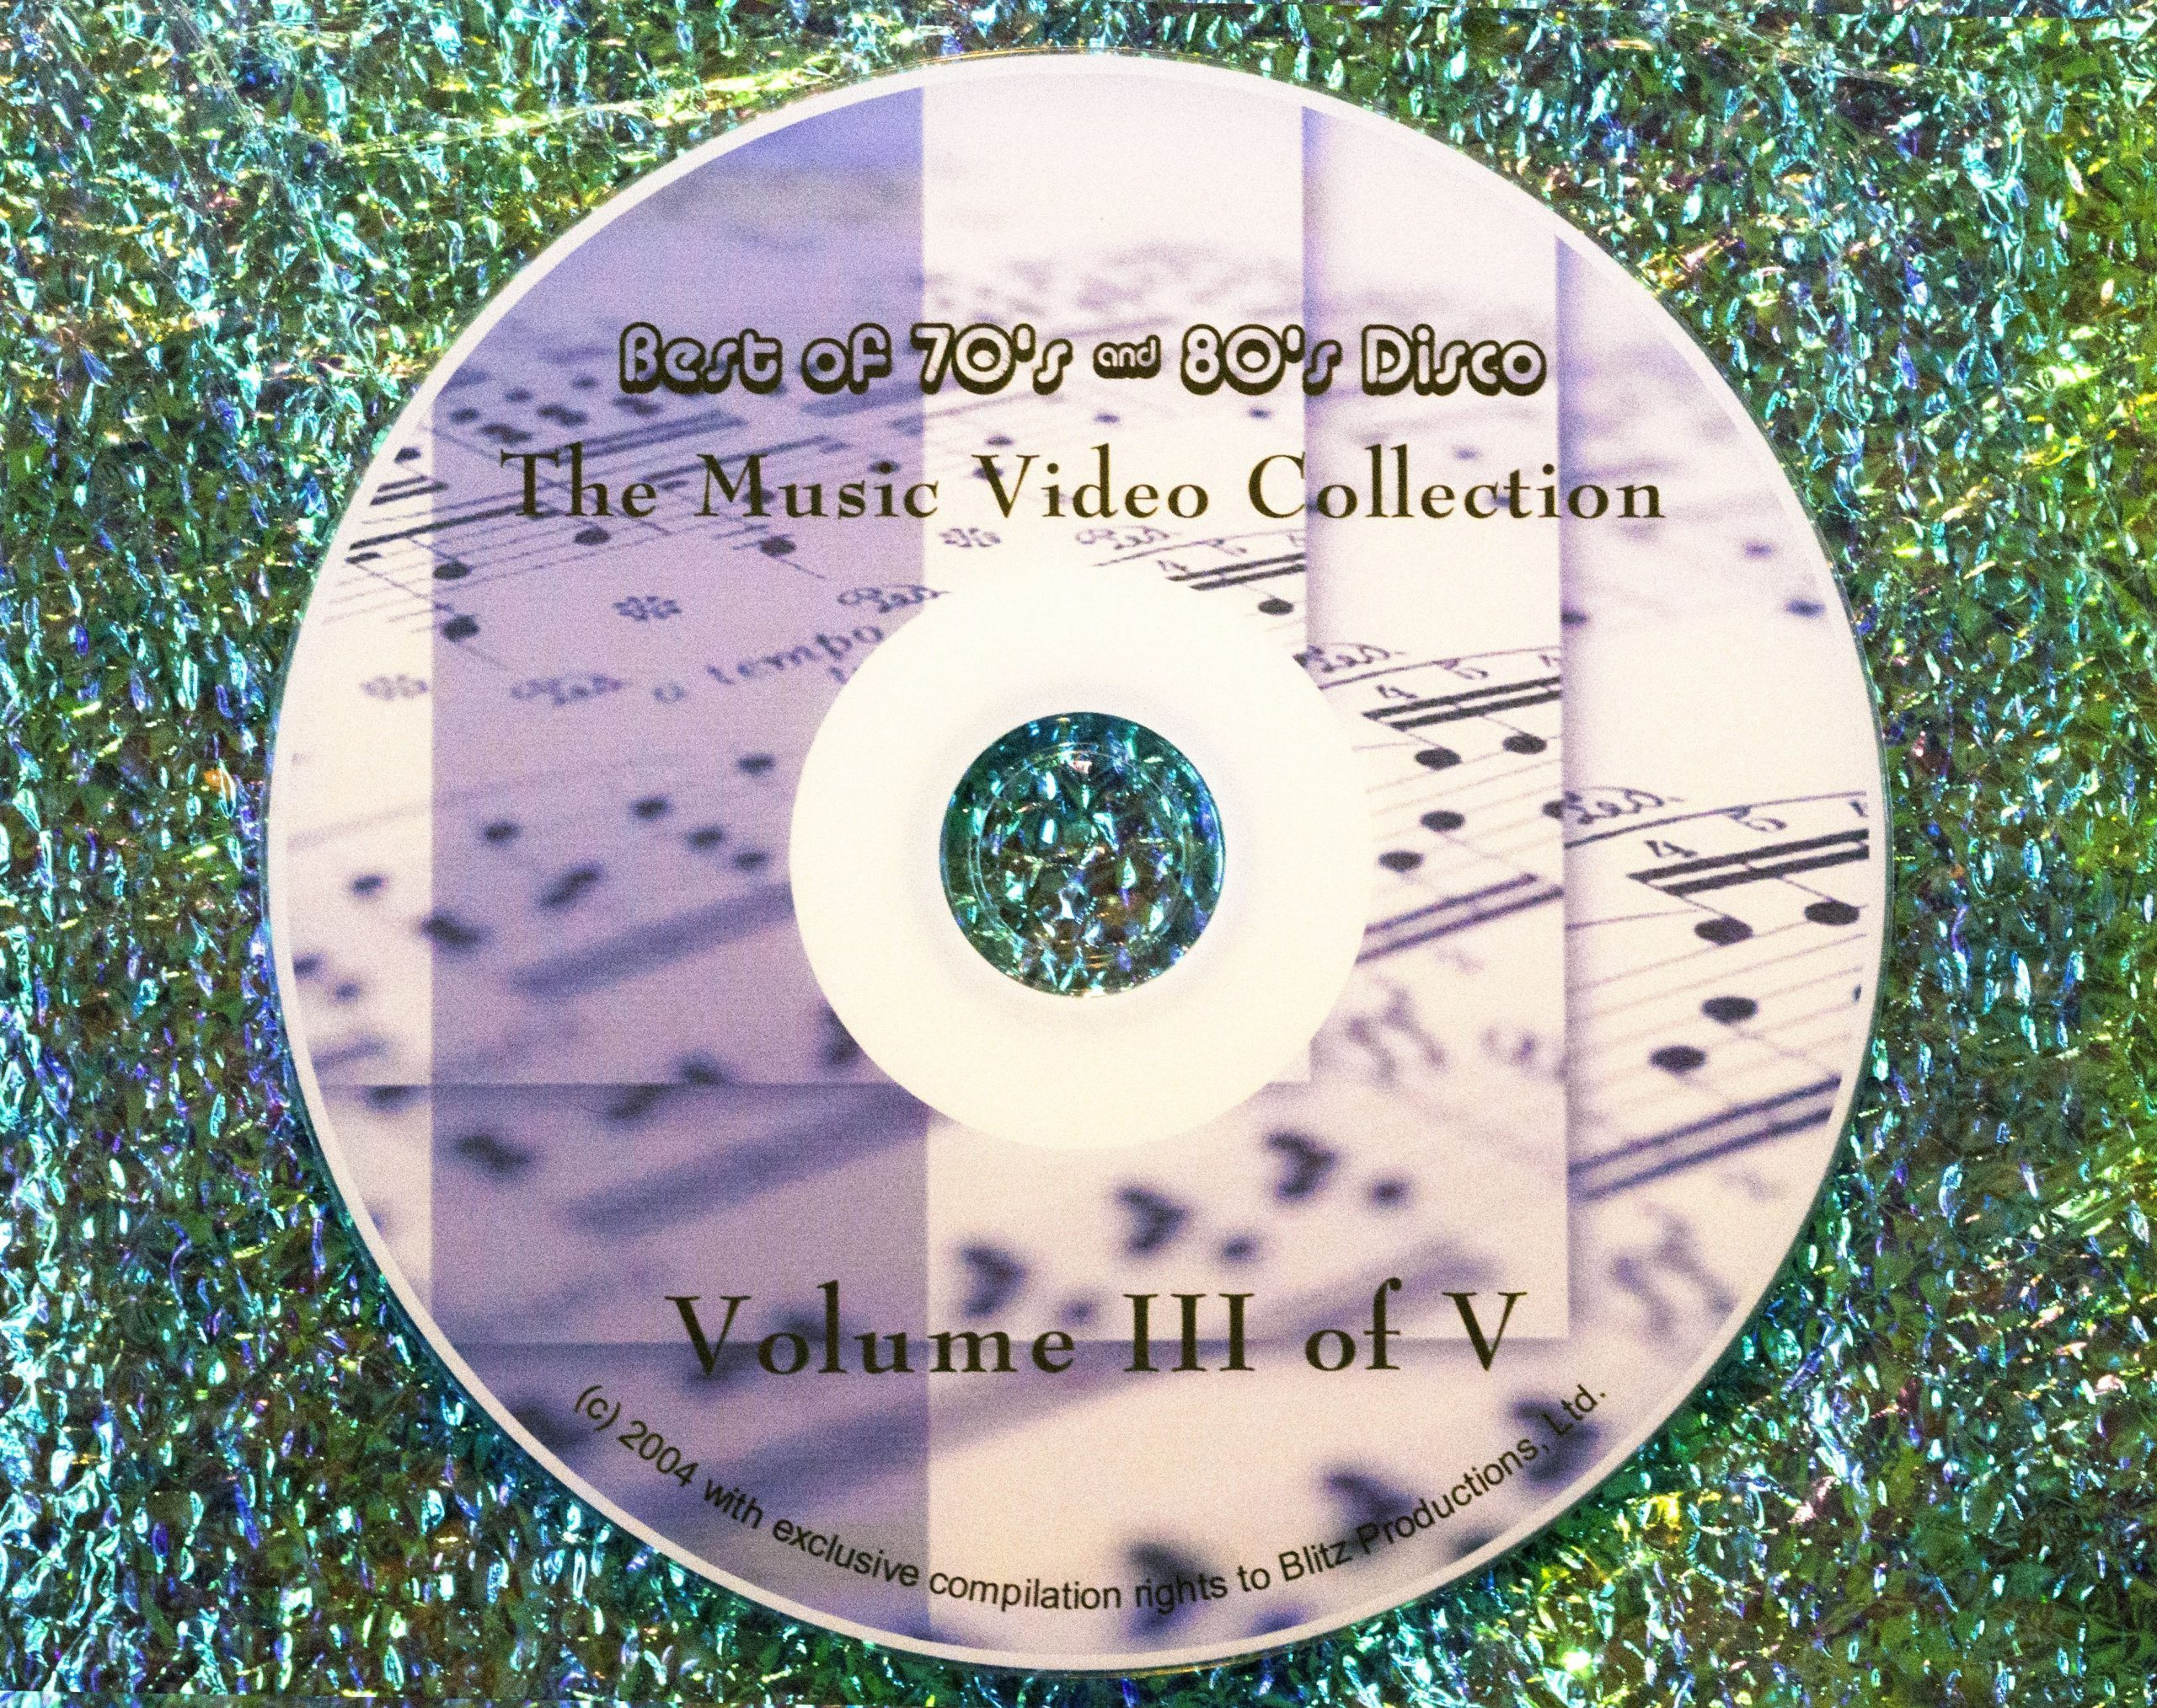 BEST OF 70's & 80's DISCO Music Video Volume III of V (Parliament Donna Summer Thelma Houston LaBelle Village People Evelyn Champagne Kool & The Gang The Gap Band Earth Wind & Fire Lisa Lisa Alicia Bridges Mary Jane Girls Expose Pebbles & Patrice Rushen)